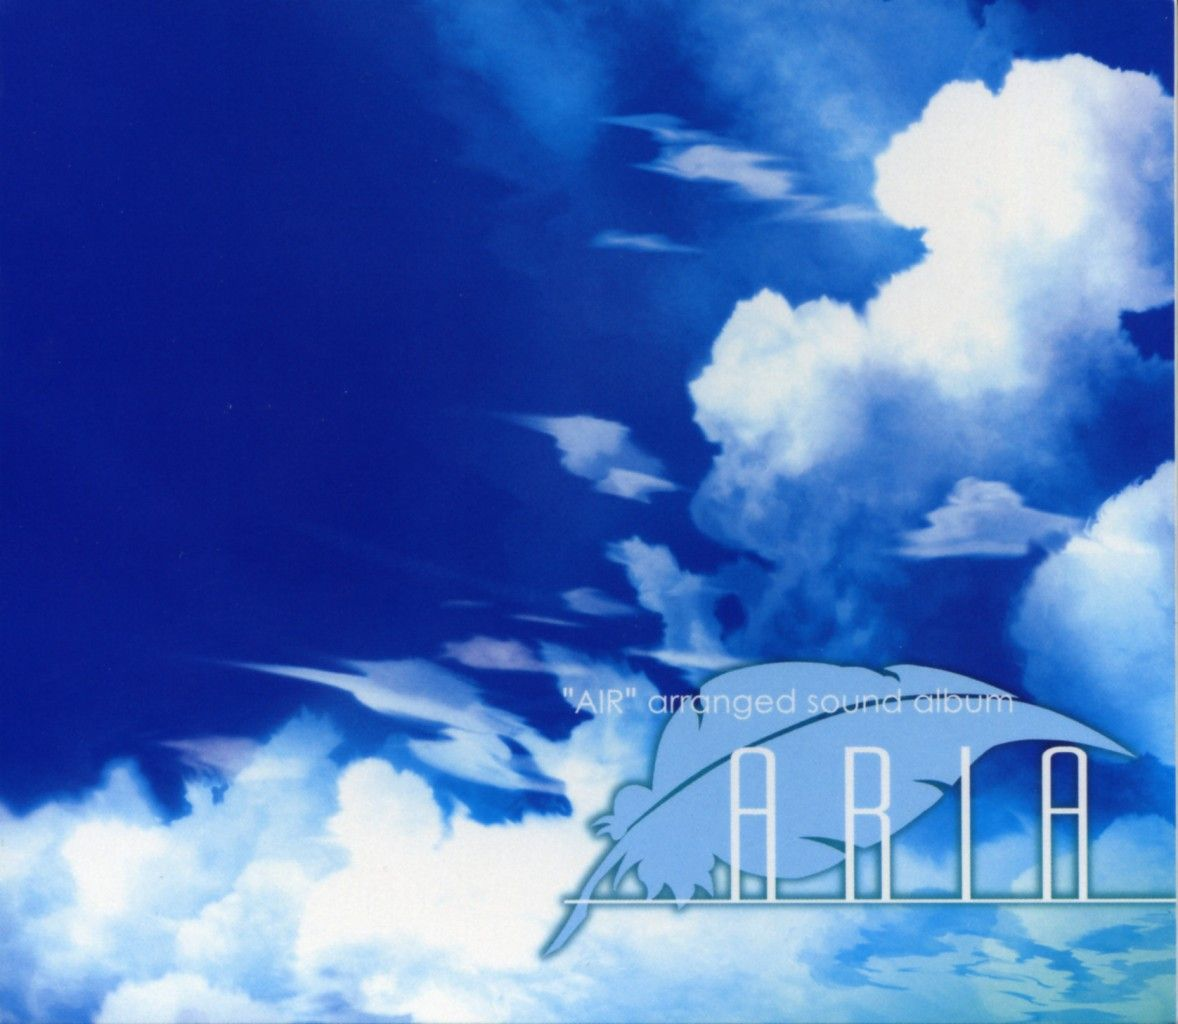 """AIR"" arranged sound album ARIA"